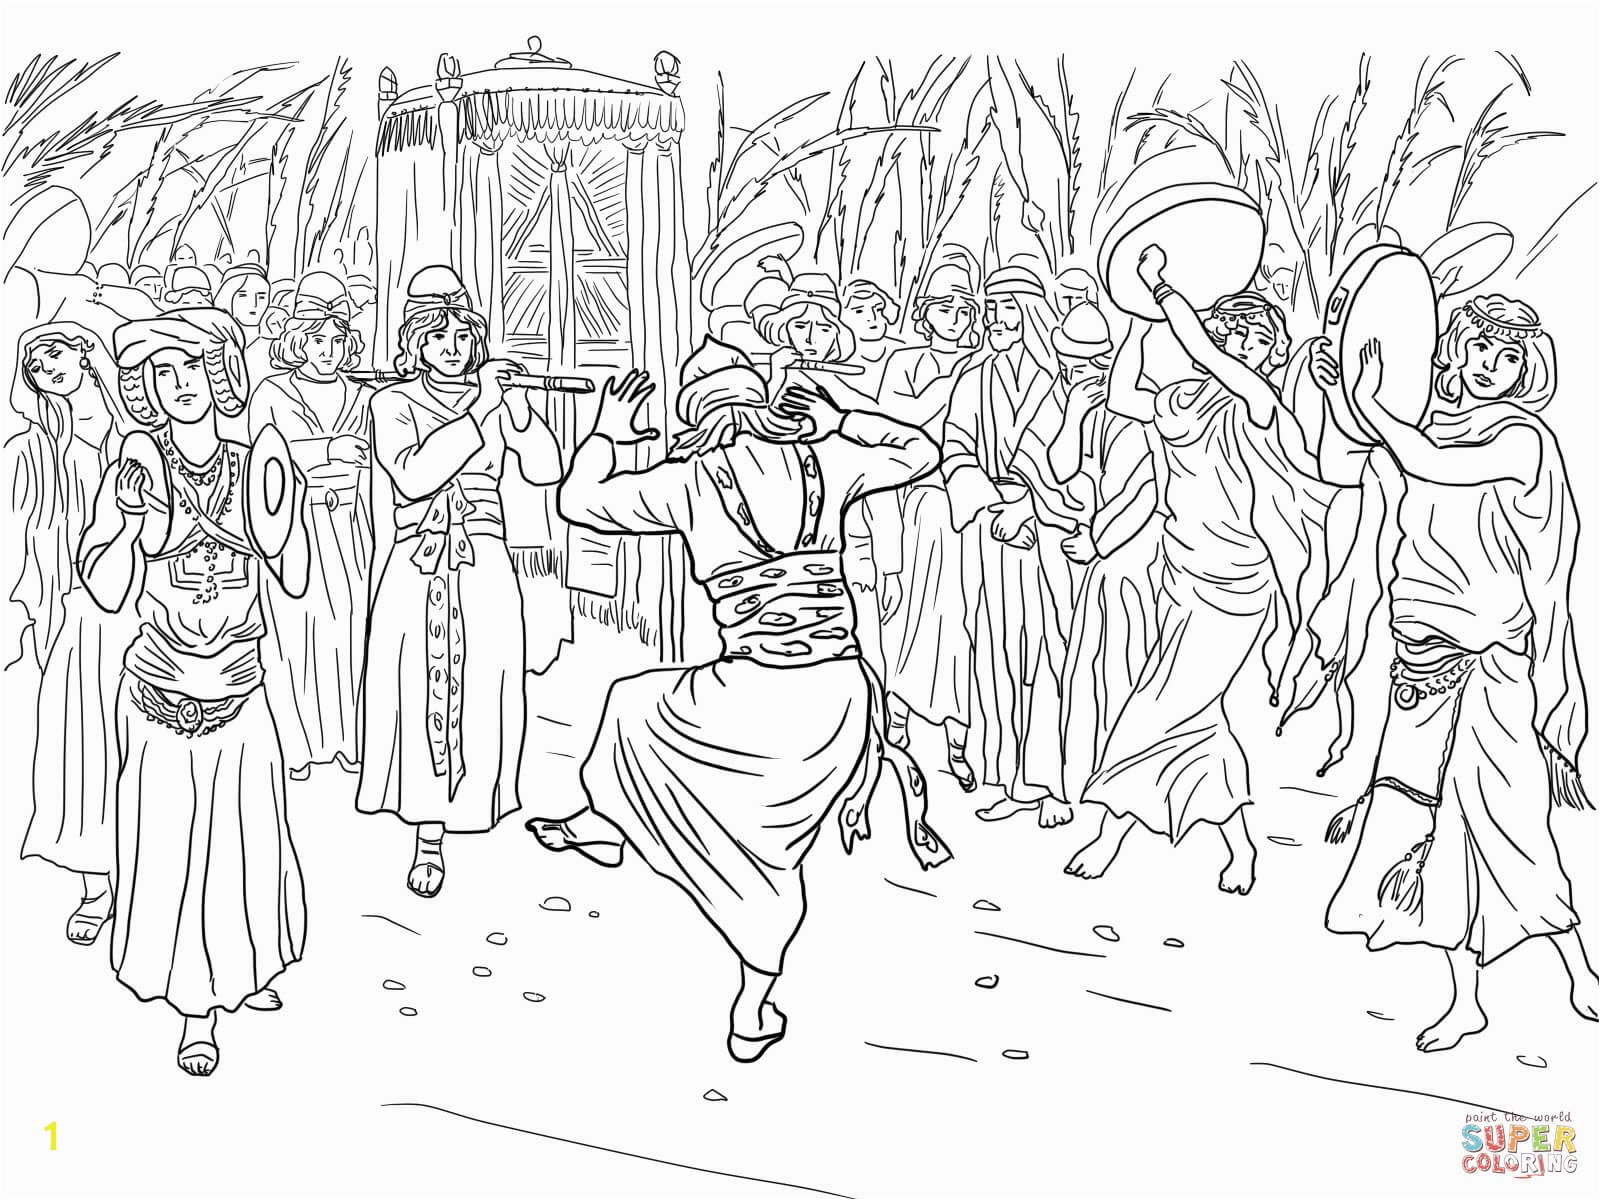 the King David Dancing Before the Ark of the Covenant coloring pages to view printable